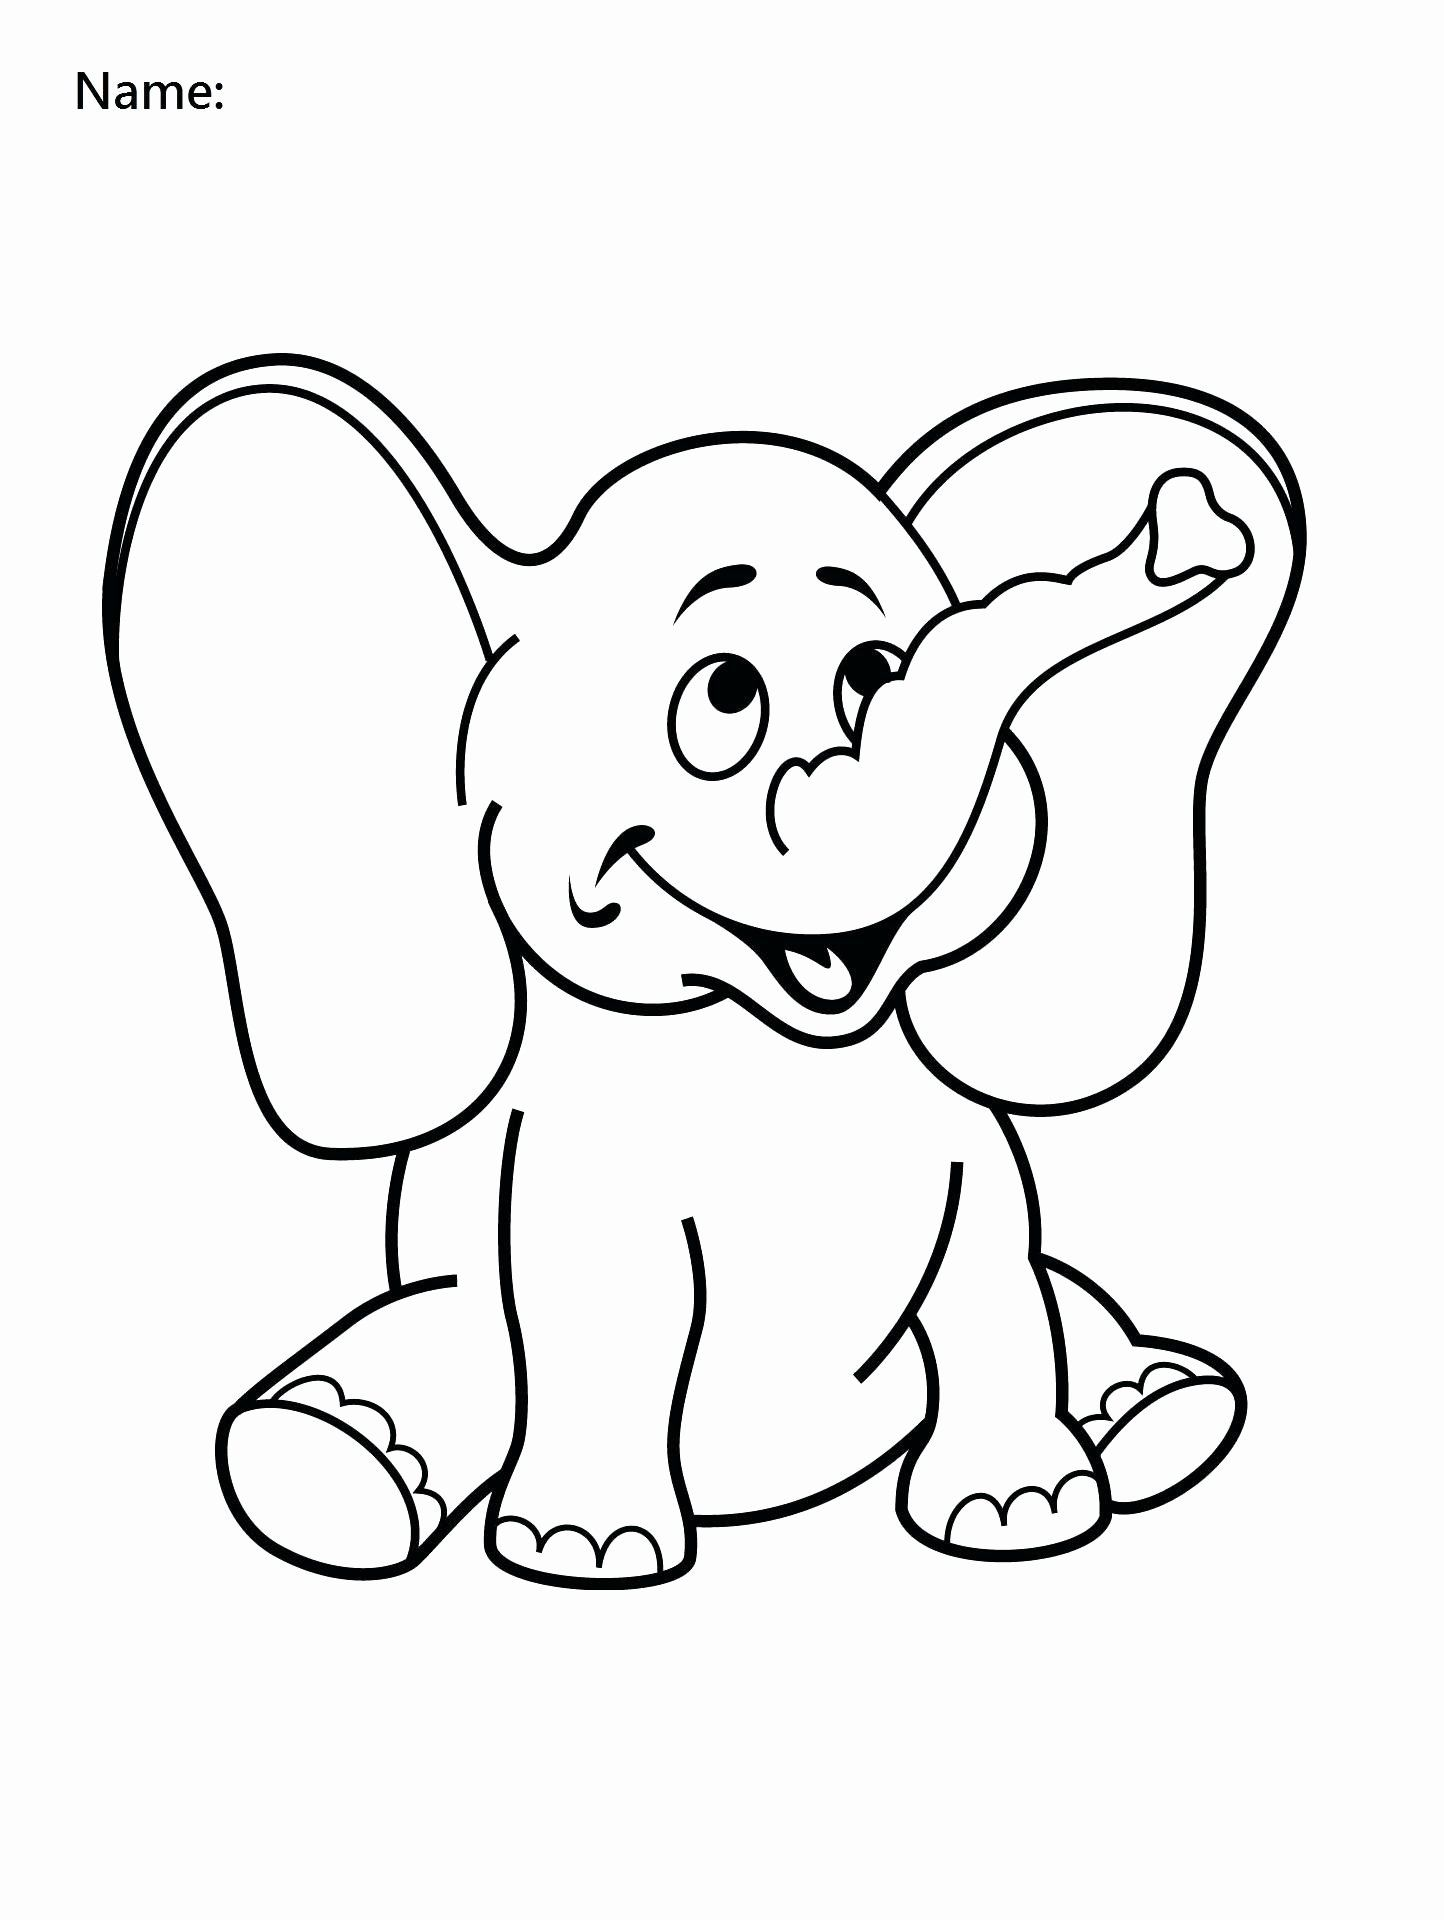 Coloring Activities For 1 Year Olds New Ear Coloring